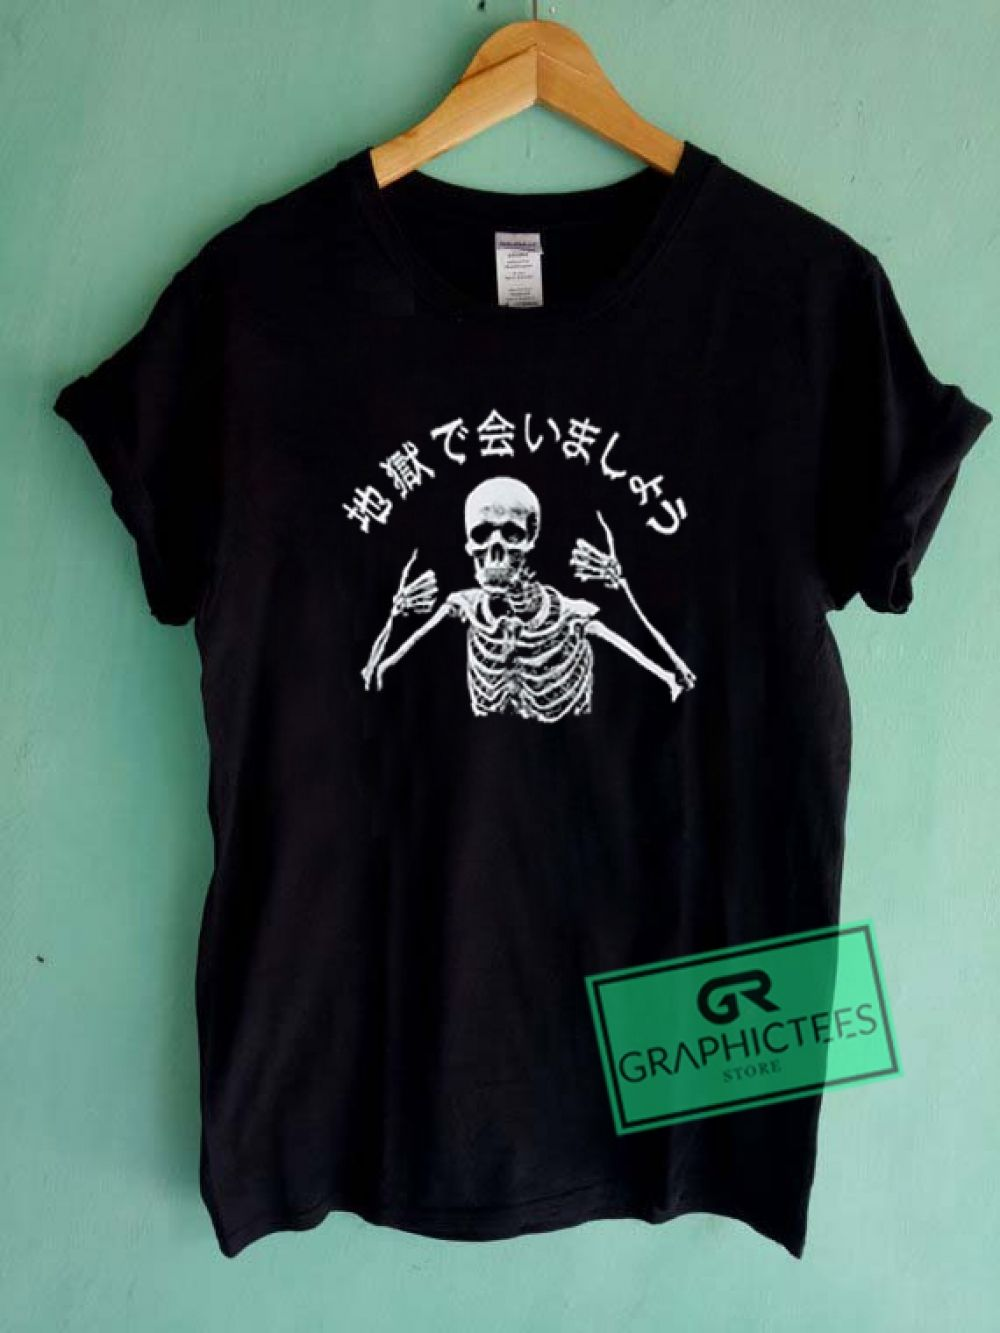 06e02a78 Skeleton Japanese Vintage Graphic Tees Shirts //Price: $13.50 // #trendy  graphic